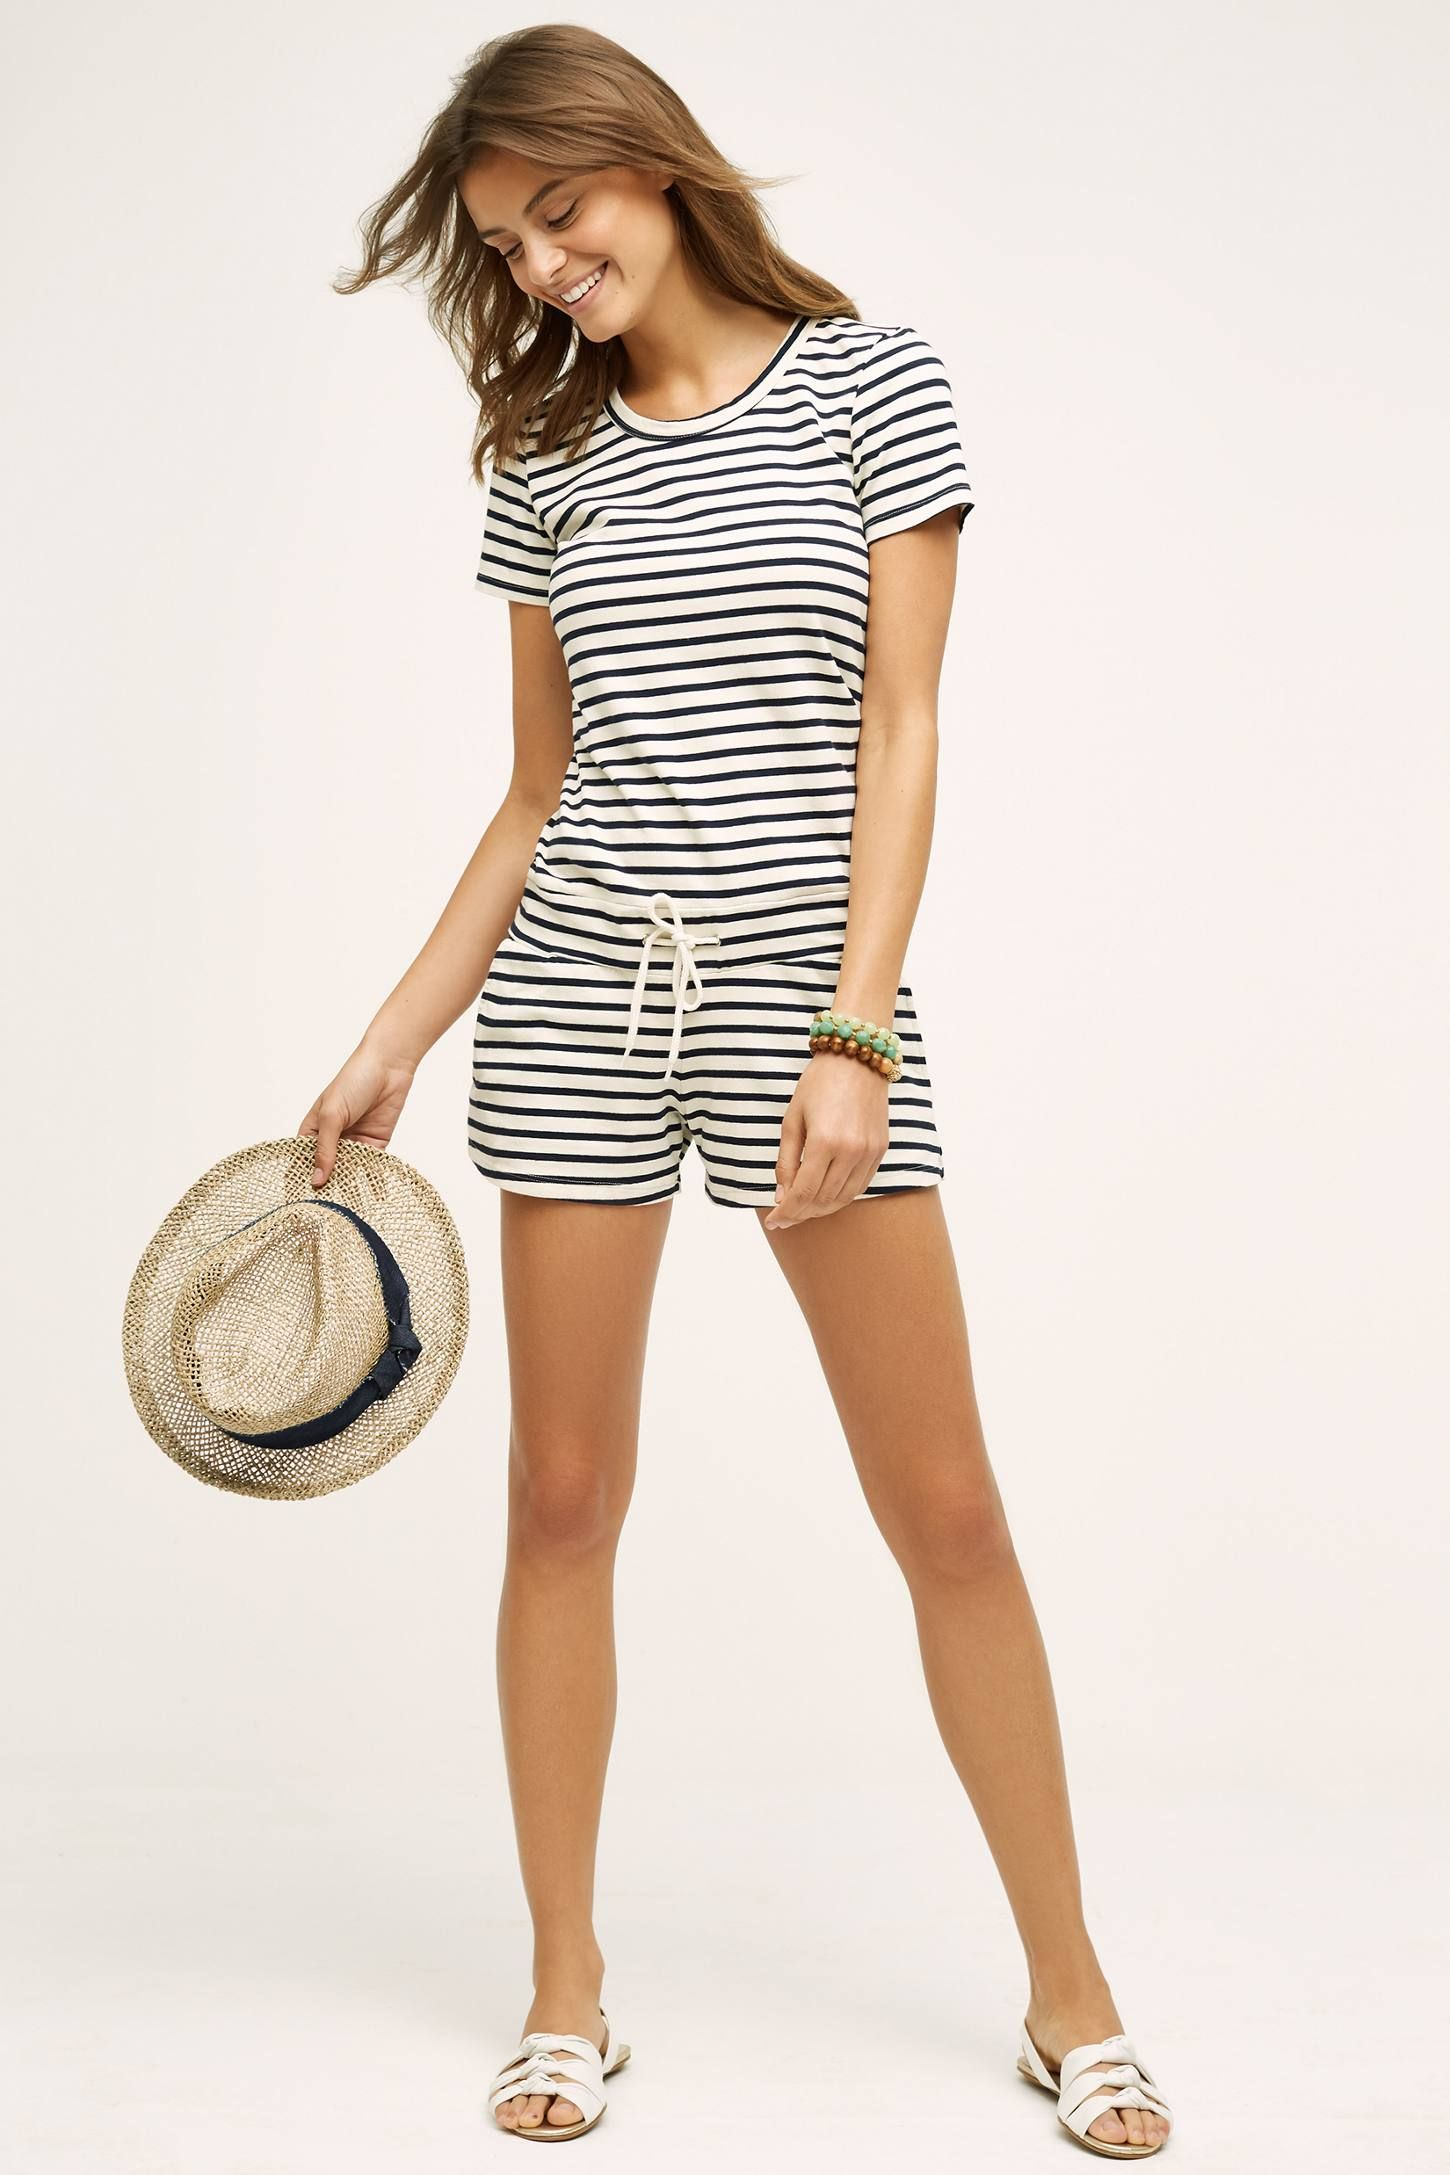 2942946fe1e6 Shop the Sailmate Romper and more Anthropologie at Anthropologie today.  Read customer reviews